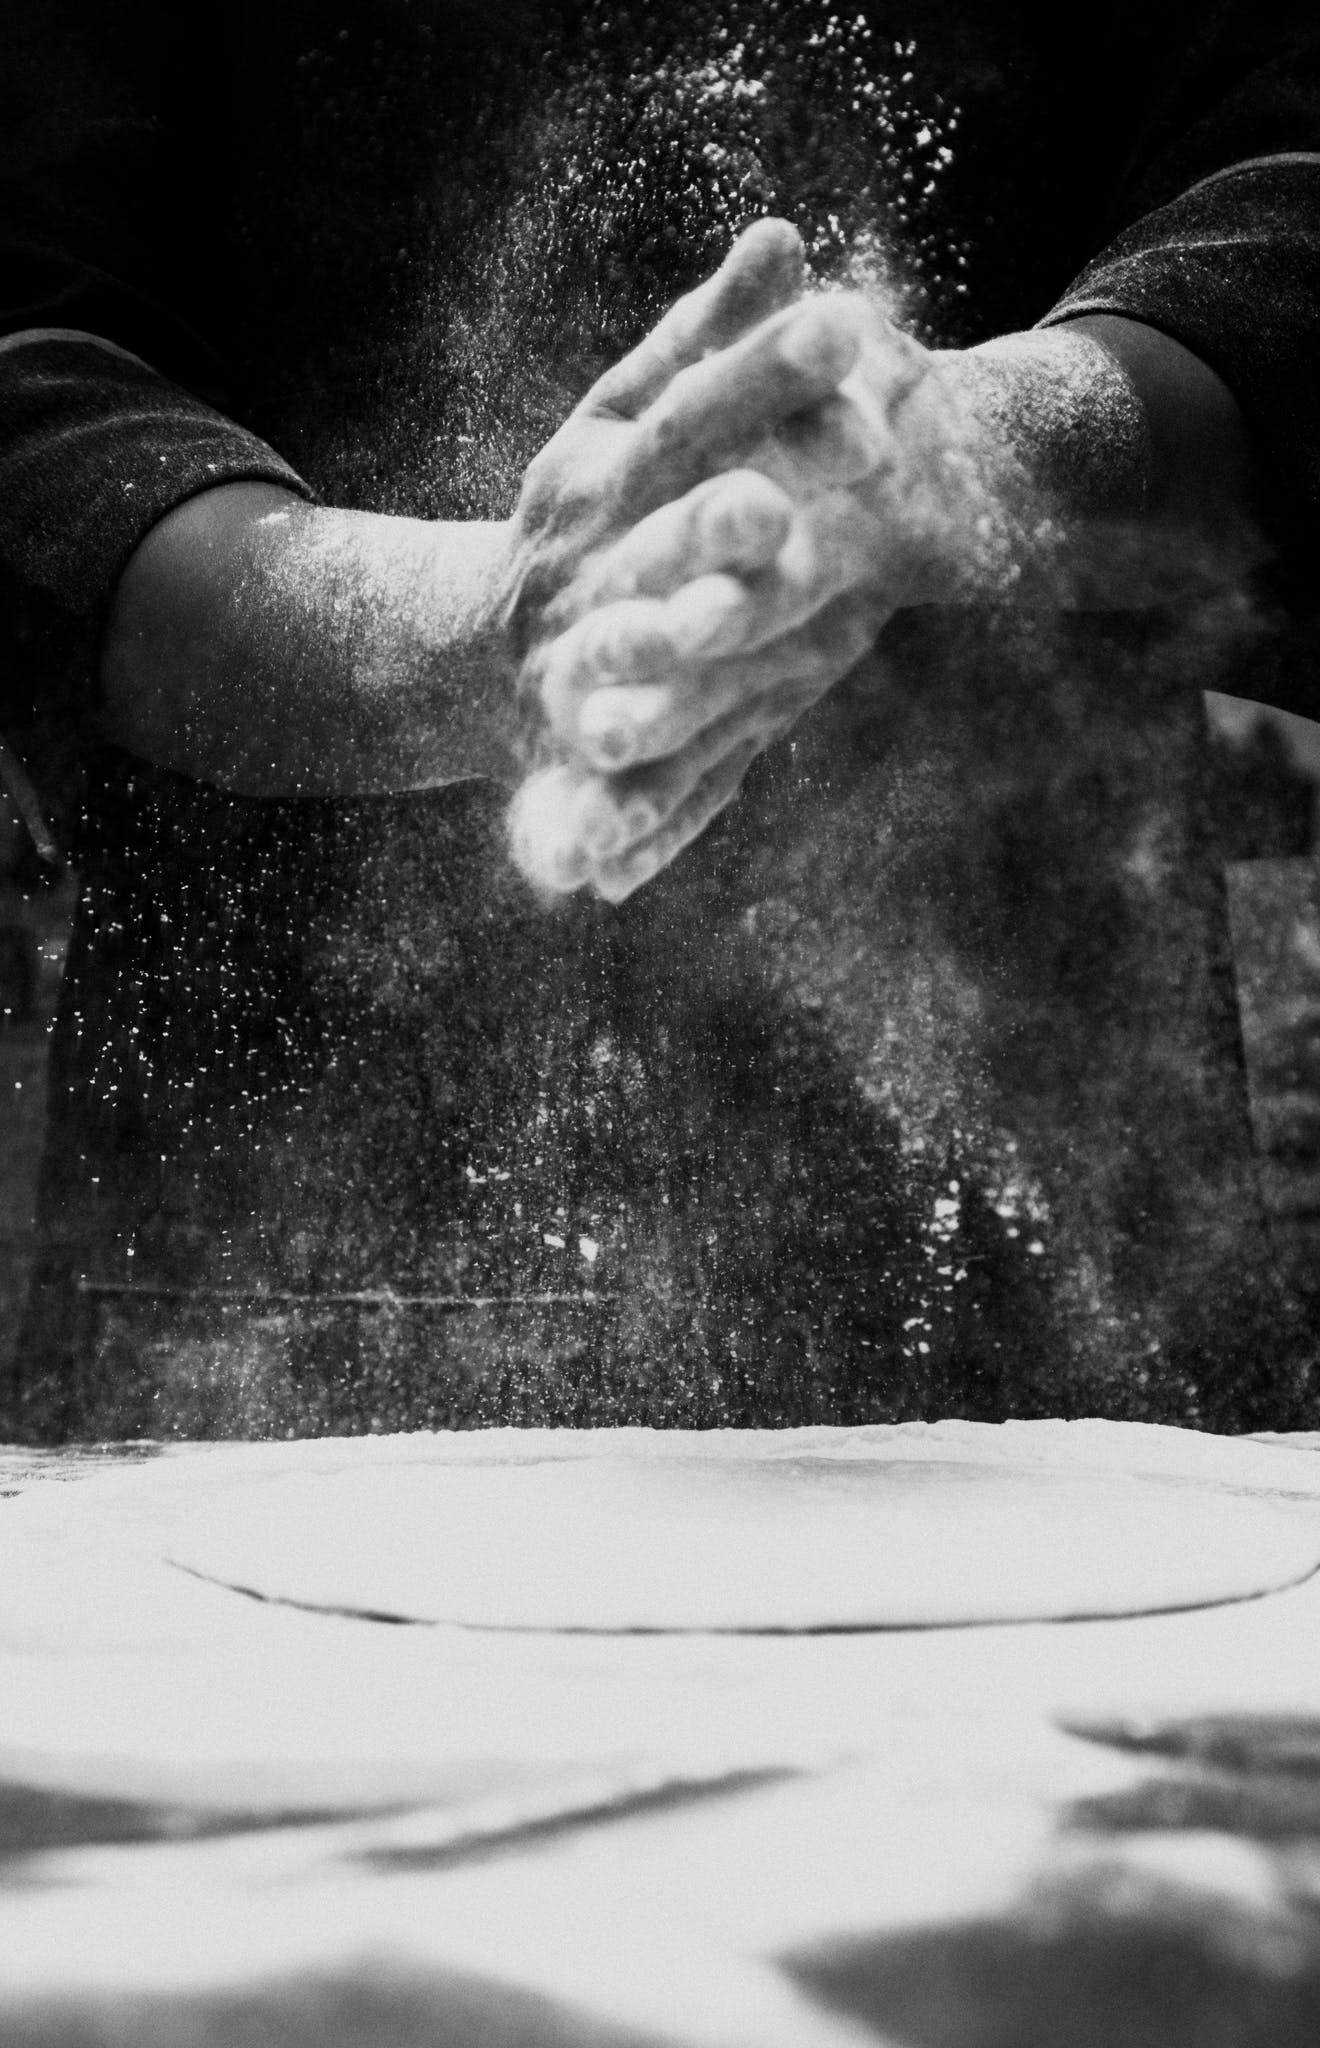 Free stock photo of food, photography, chef, flour